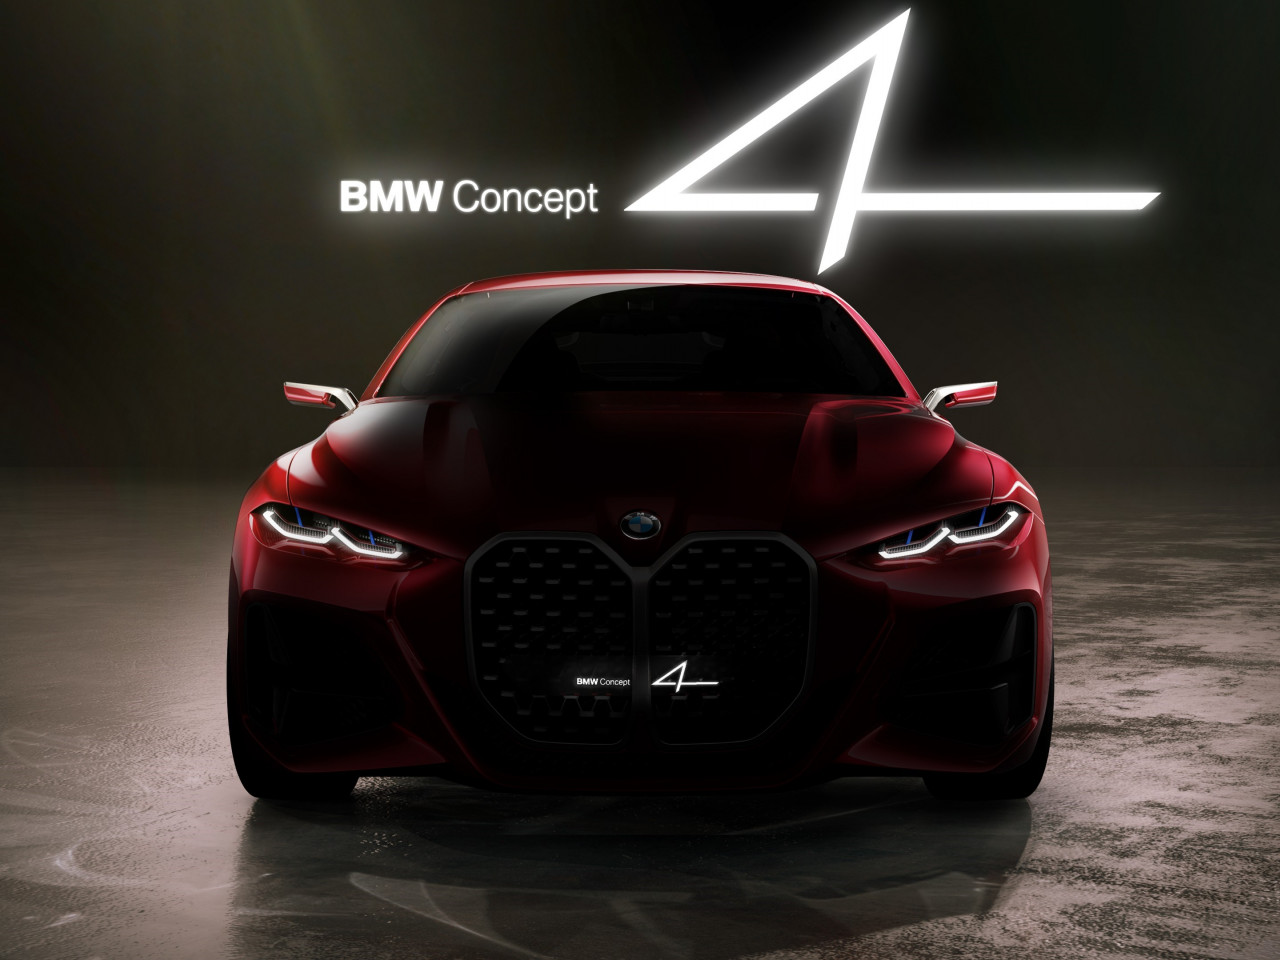 BMW Concept 4 wallpaper 1280x960